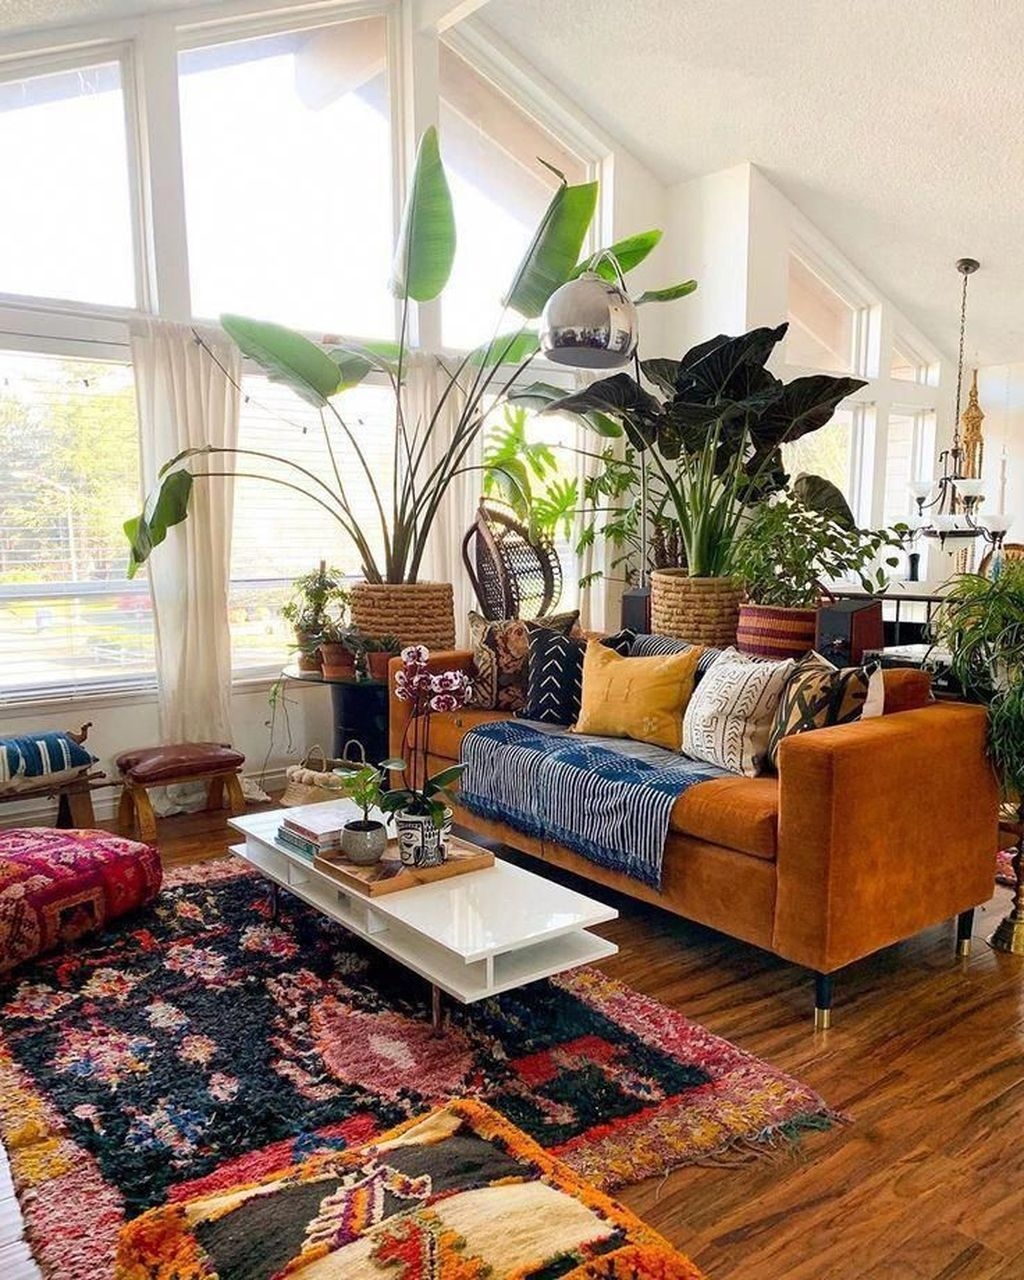 33 Stunning Bohemian Living Room Decor Ideas In 2020 Ecle